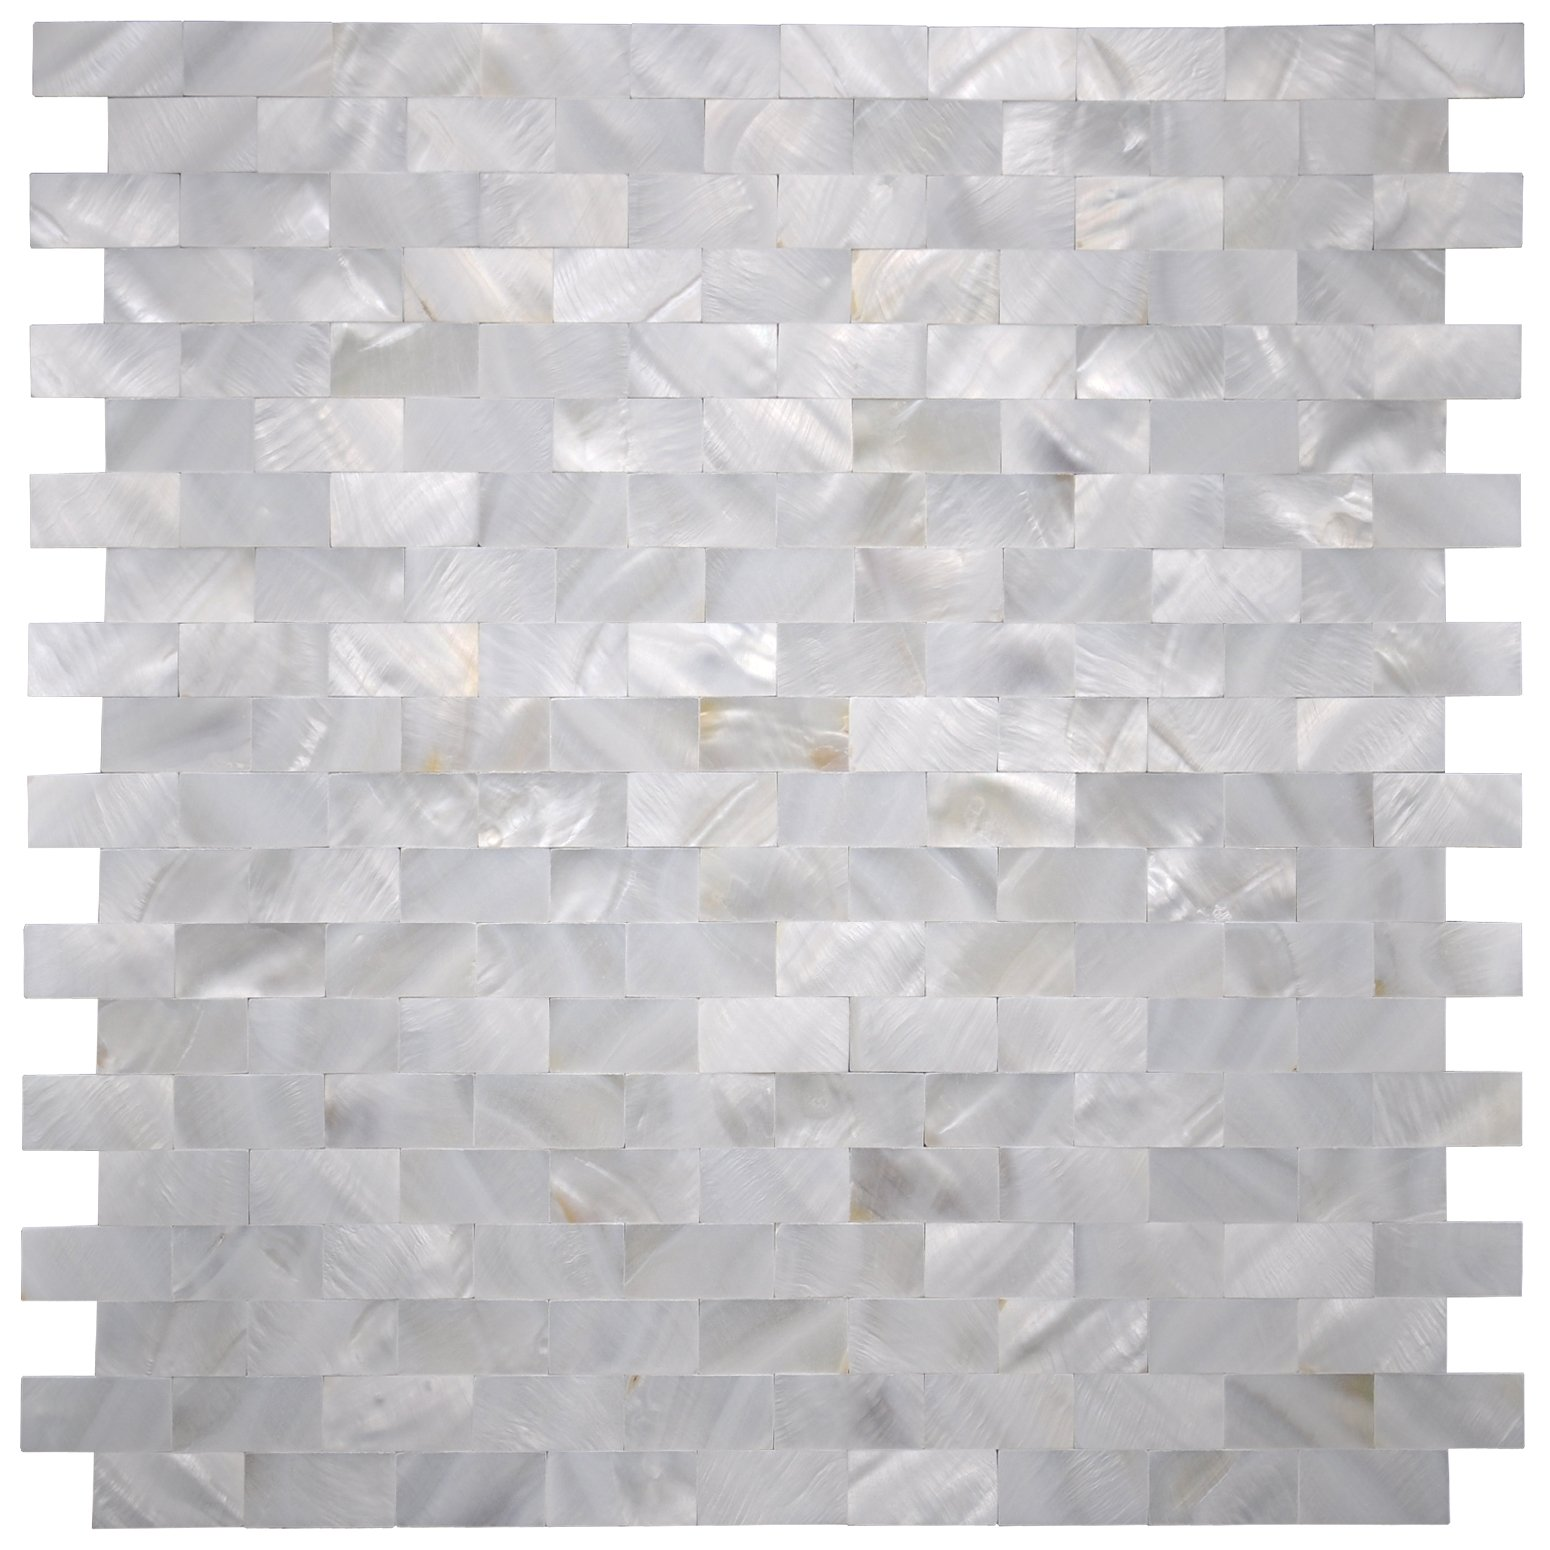 Art3d Mother of Pearl Shell Mosaic Tile for Kitchen Backsplash, 12''x12'' (10 Tiles) by Art3d